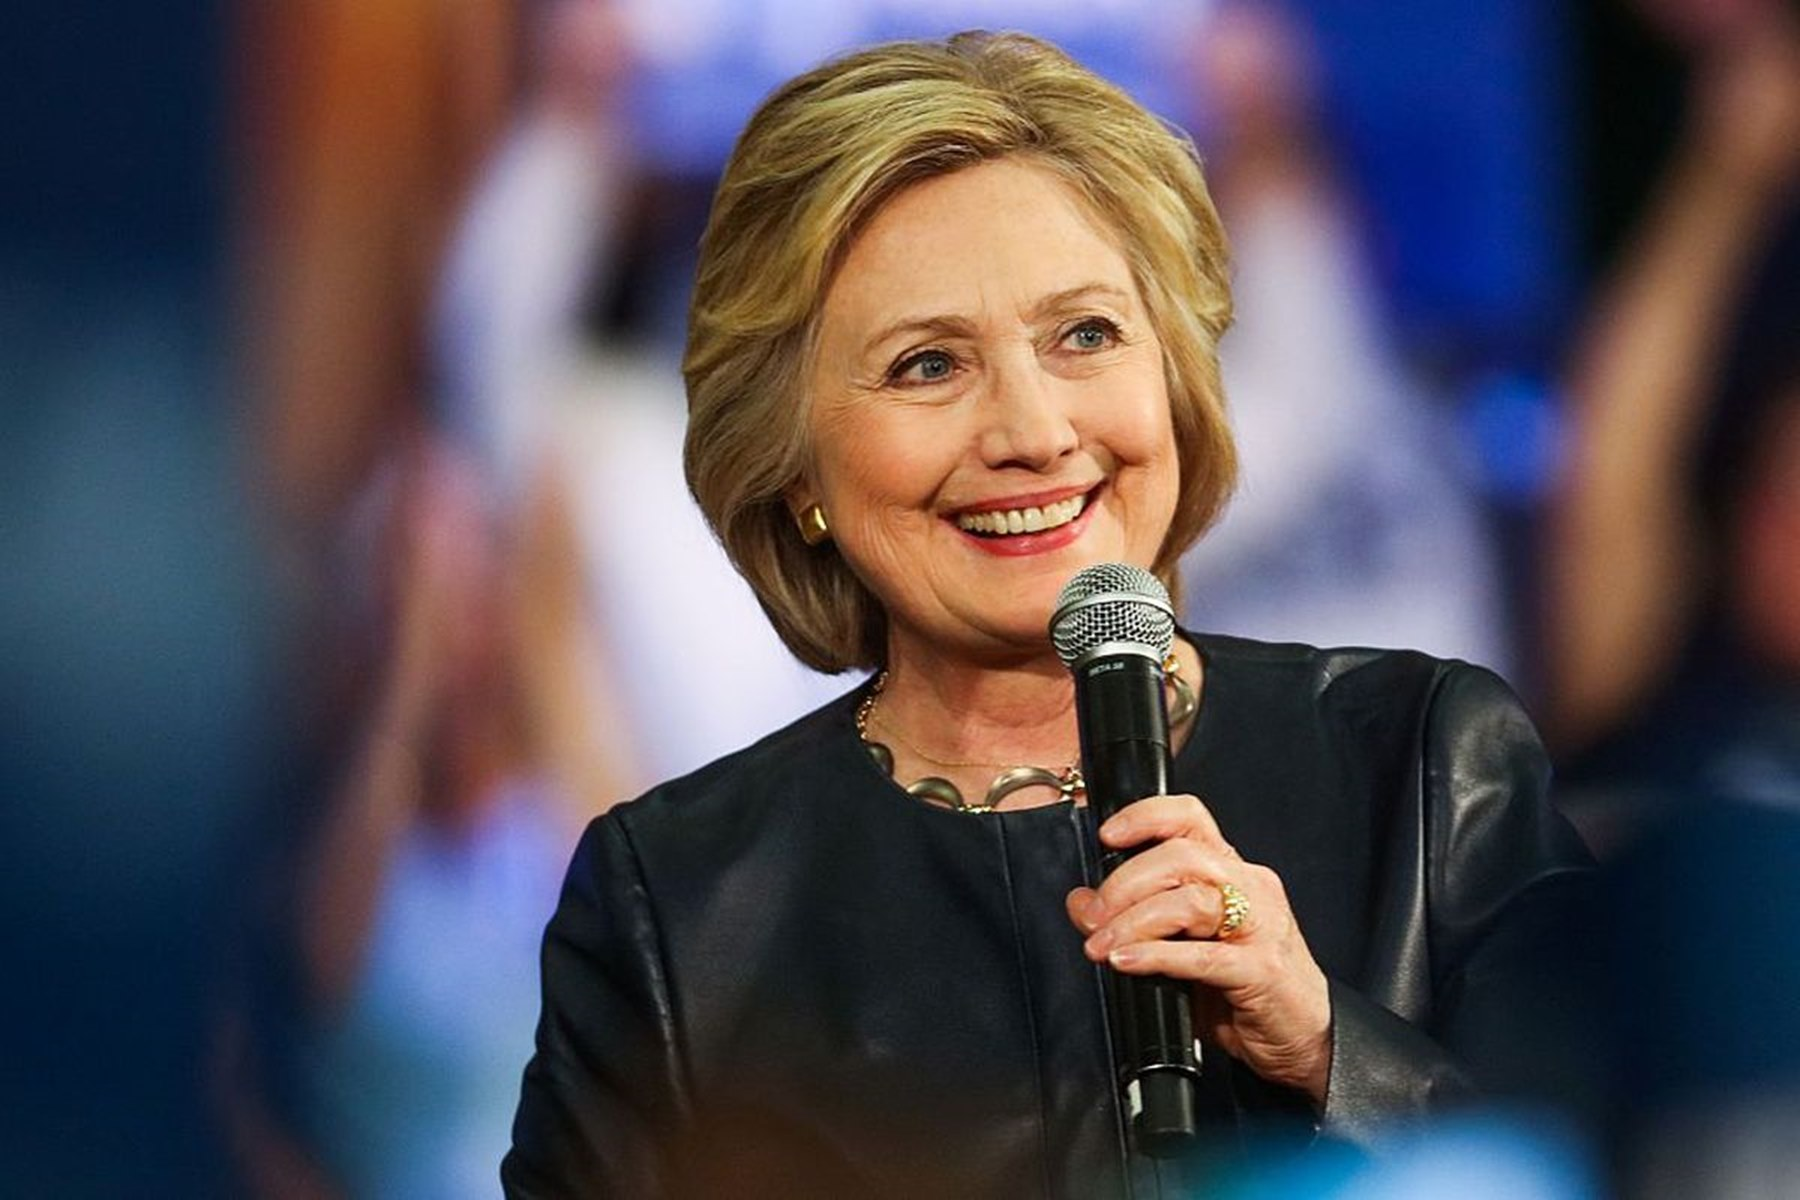 Hillary Clinton Mike Bloomberg Vice President Chatter